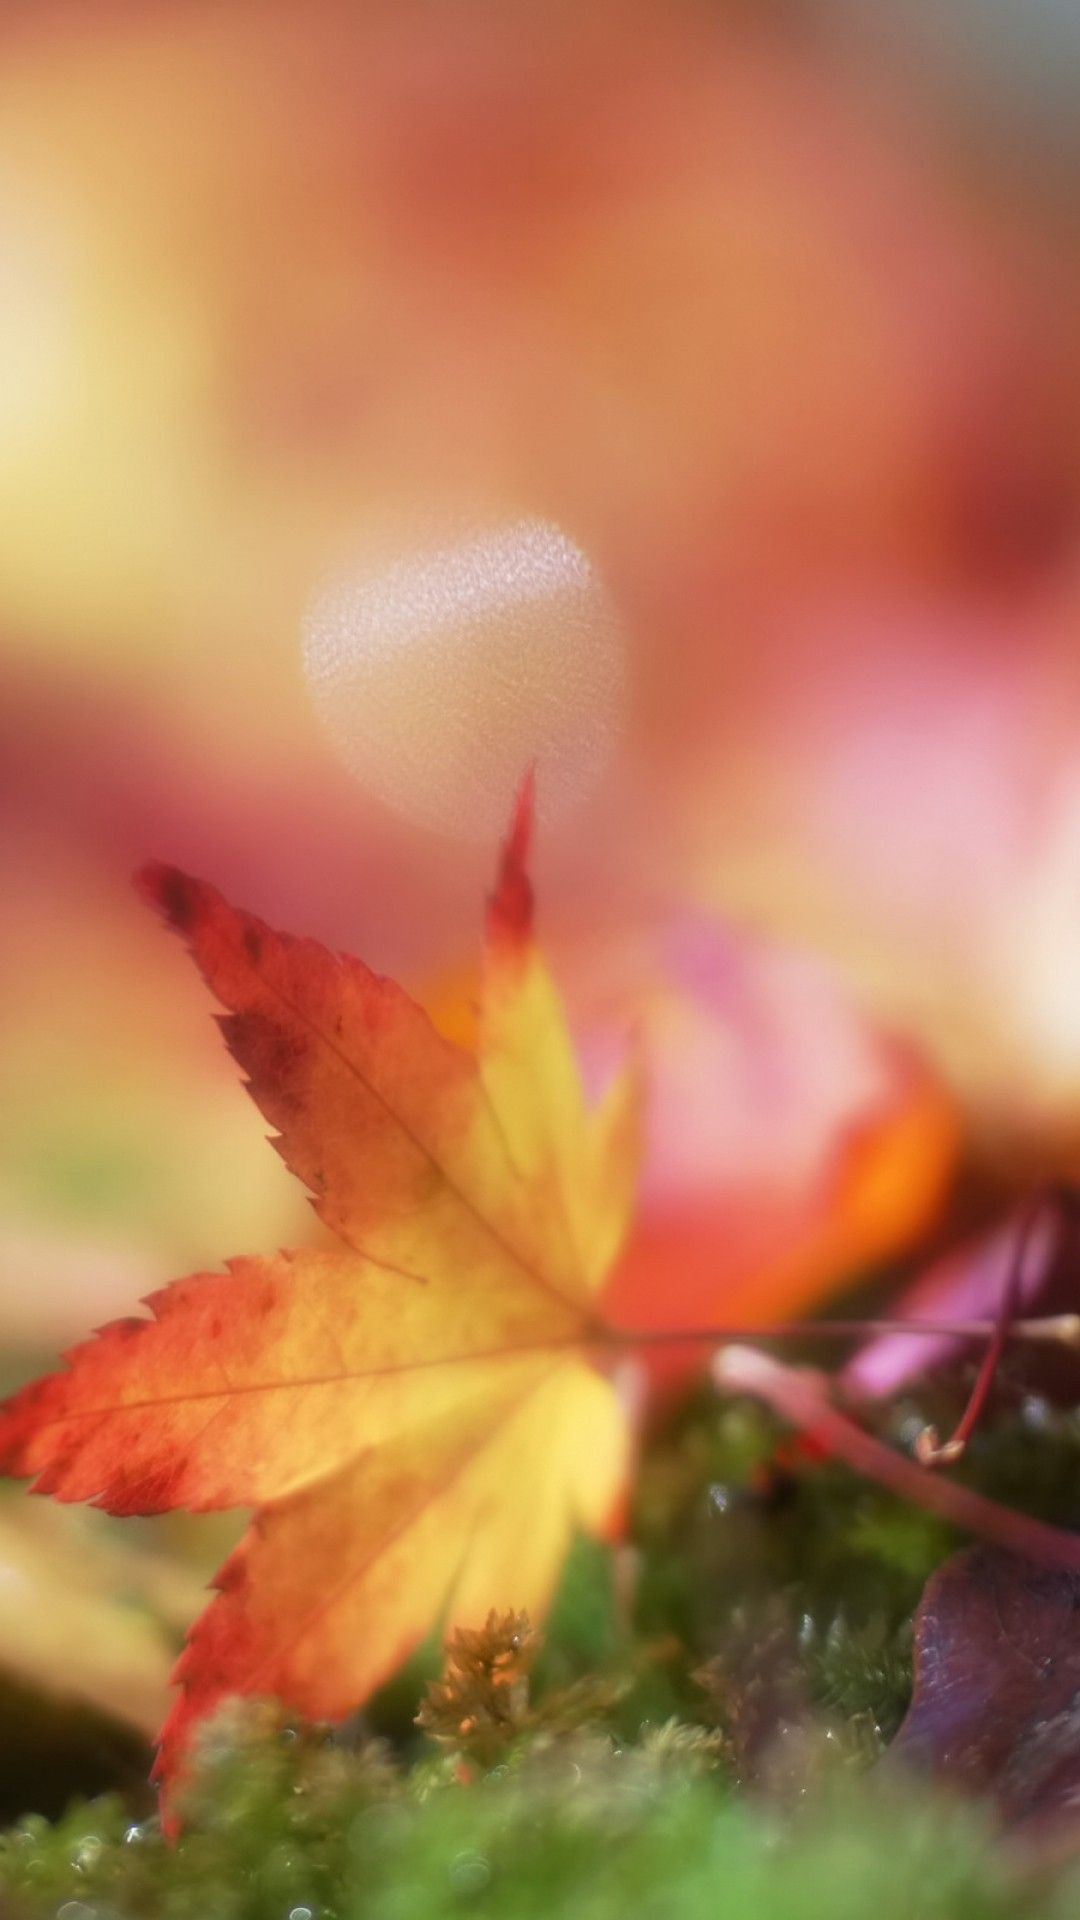 Autumn Leaves Photography Wallpaper High Definition with High